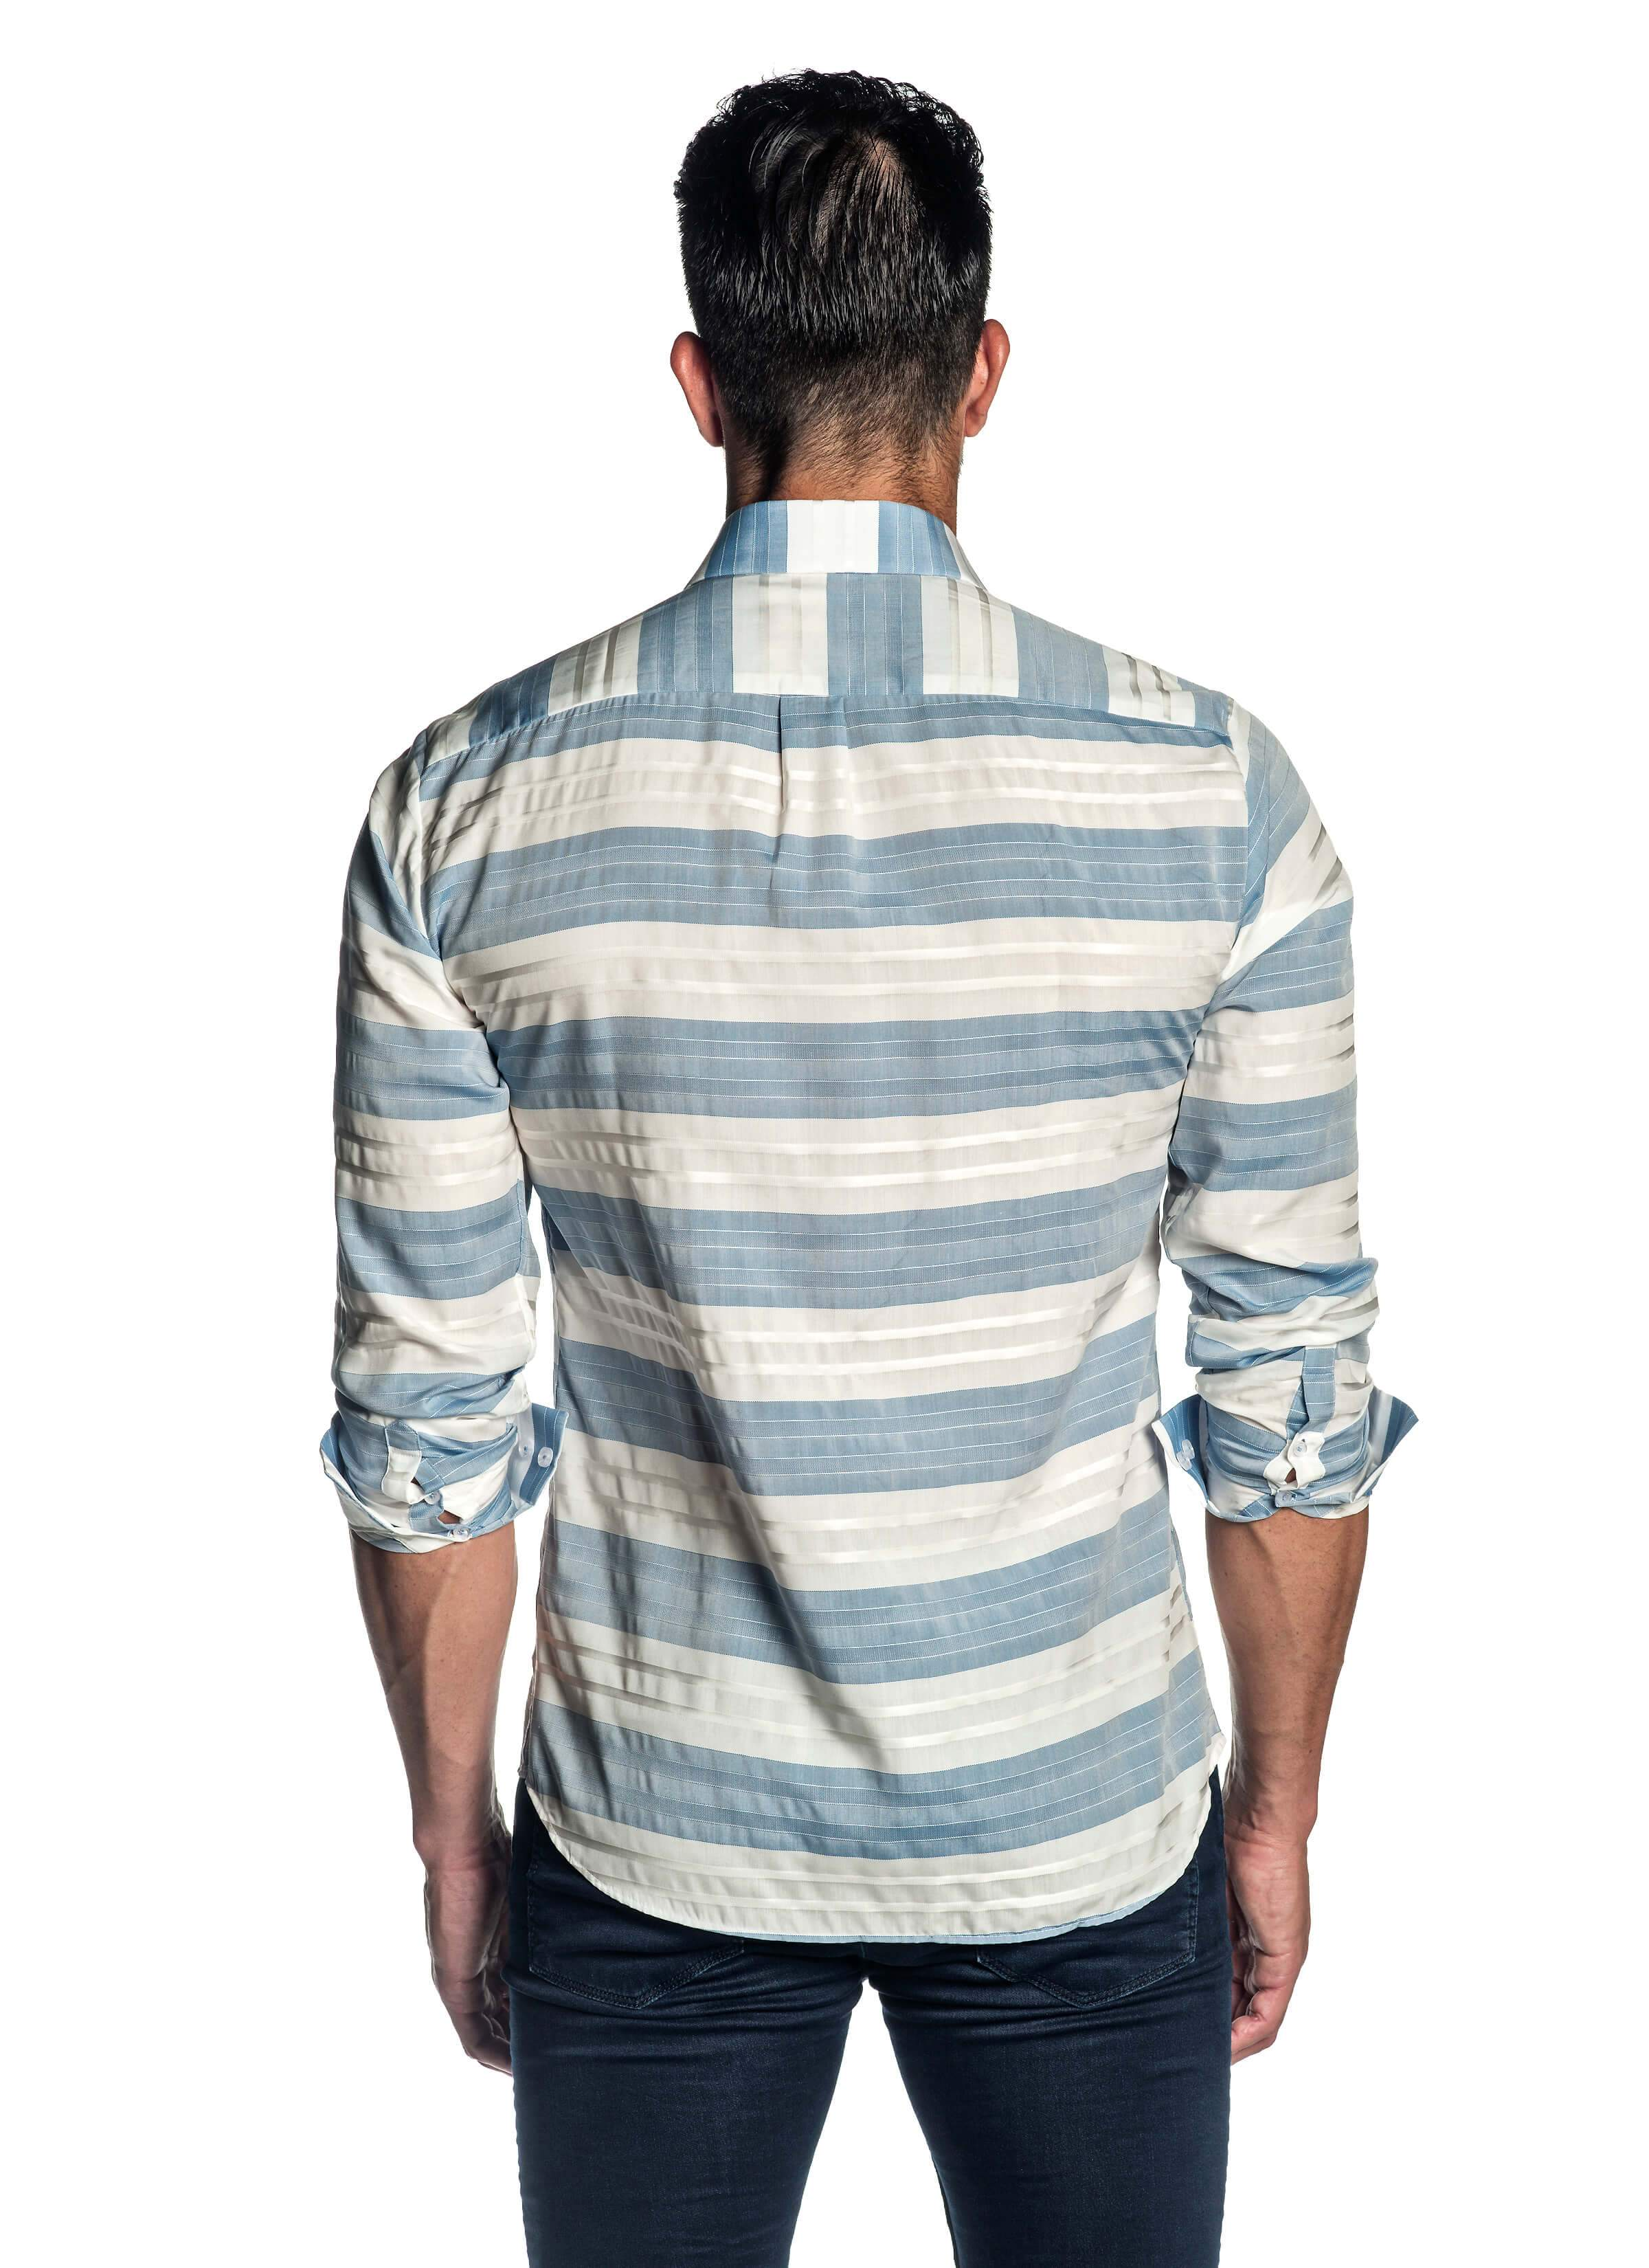 White and Blue Stripe Shirt for Men AH-ITA-T-9005